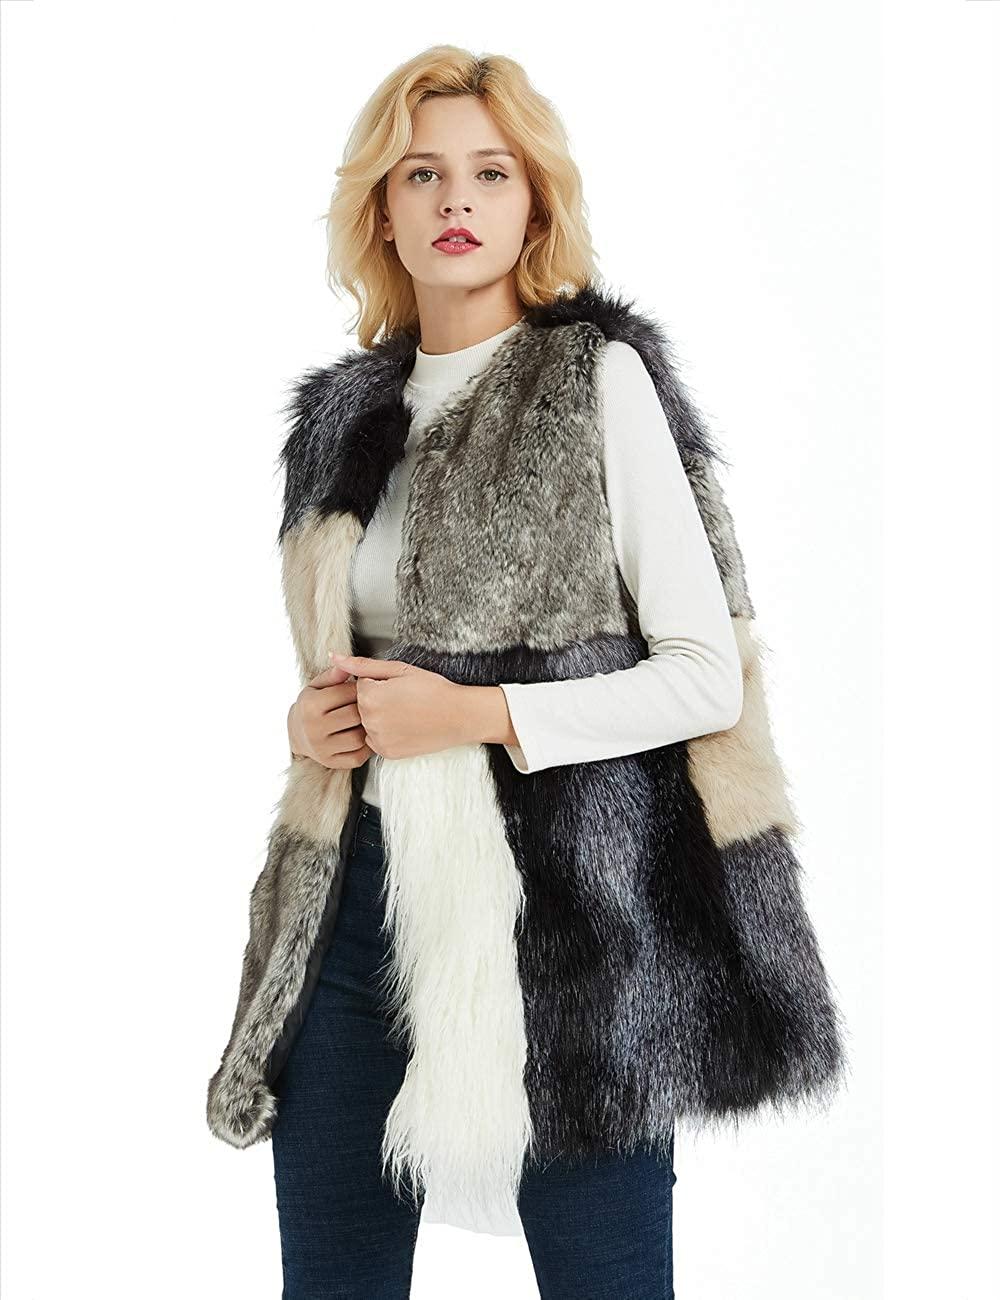 Bellivera Women's Faux Fur Vest Warm Outwear for Spring Fall and Winter